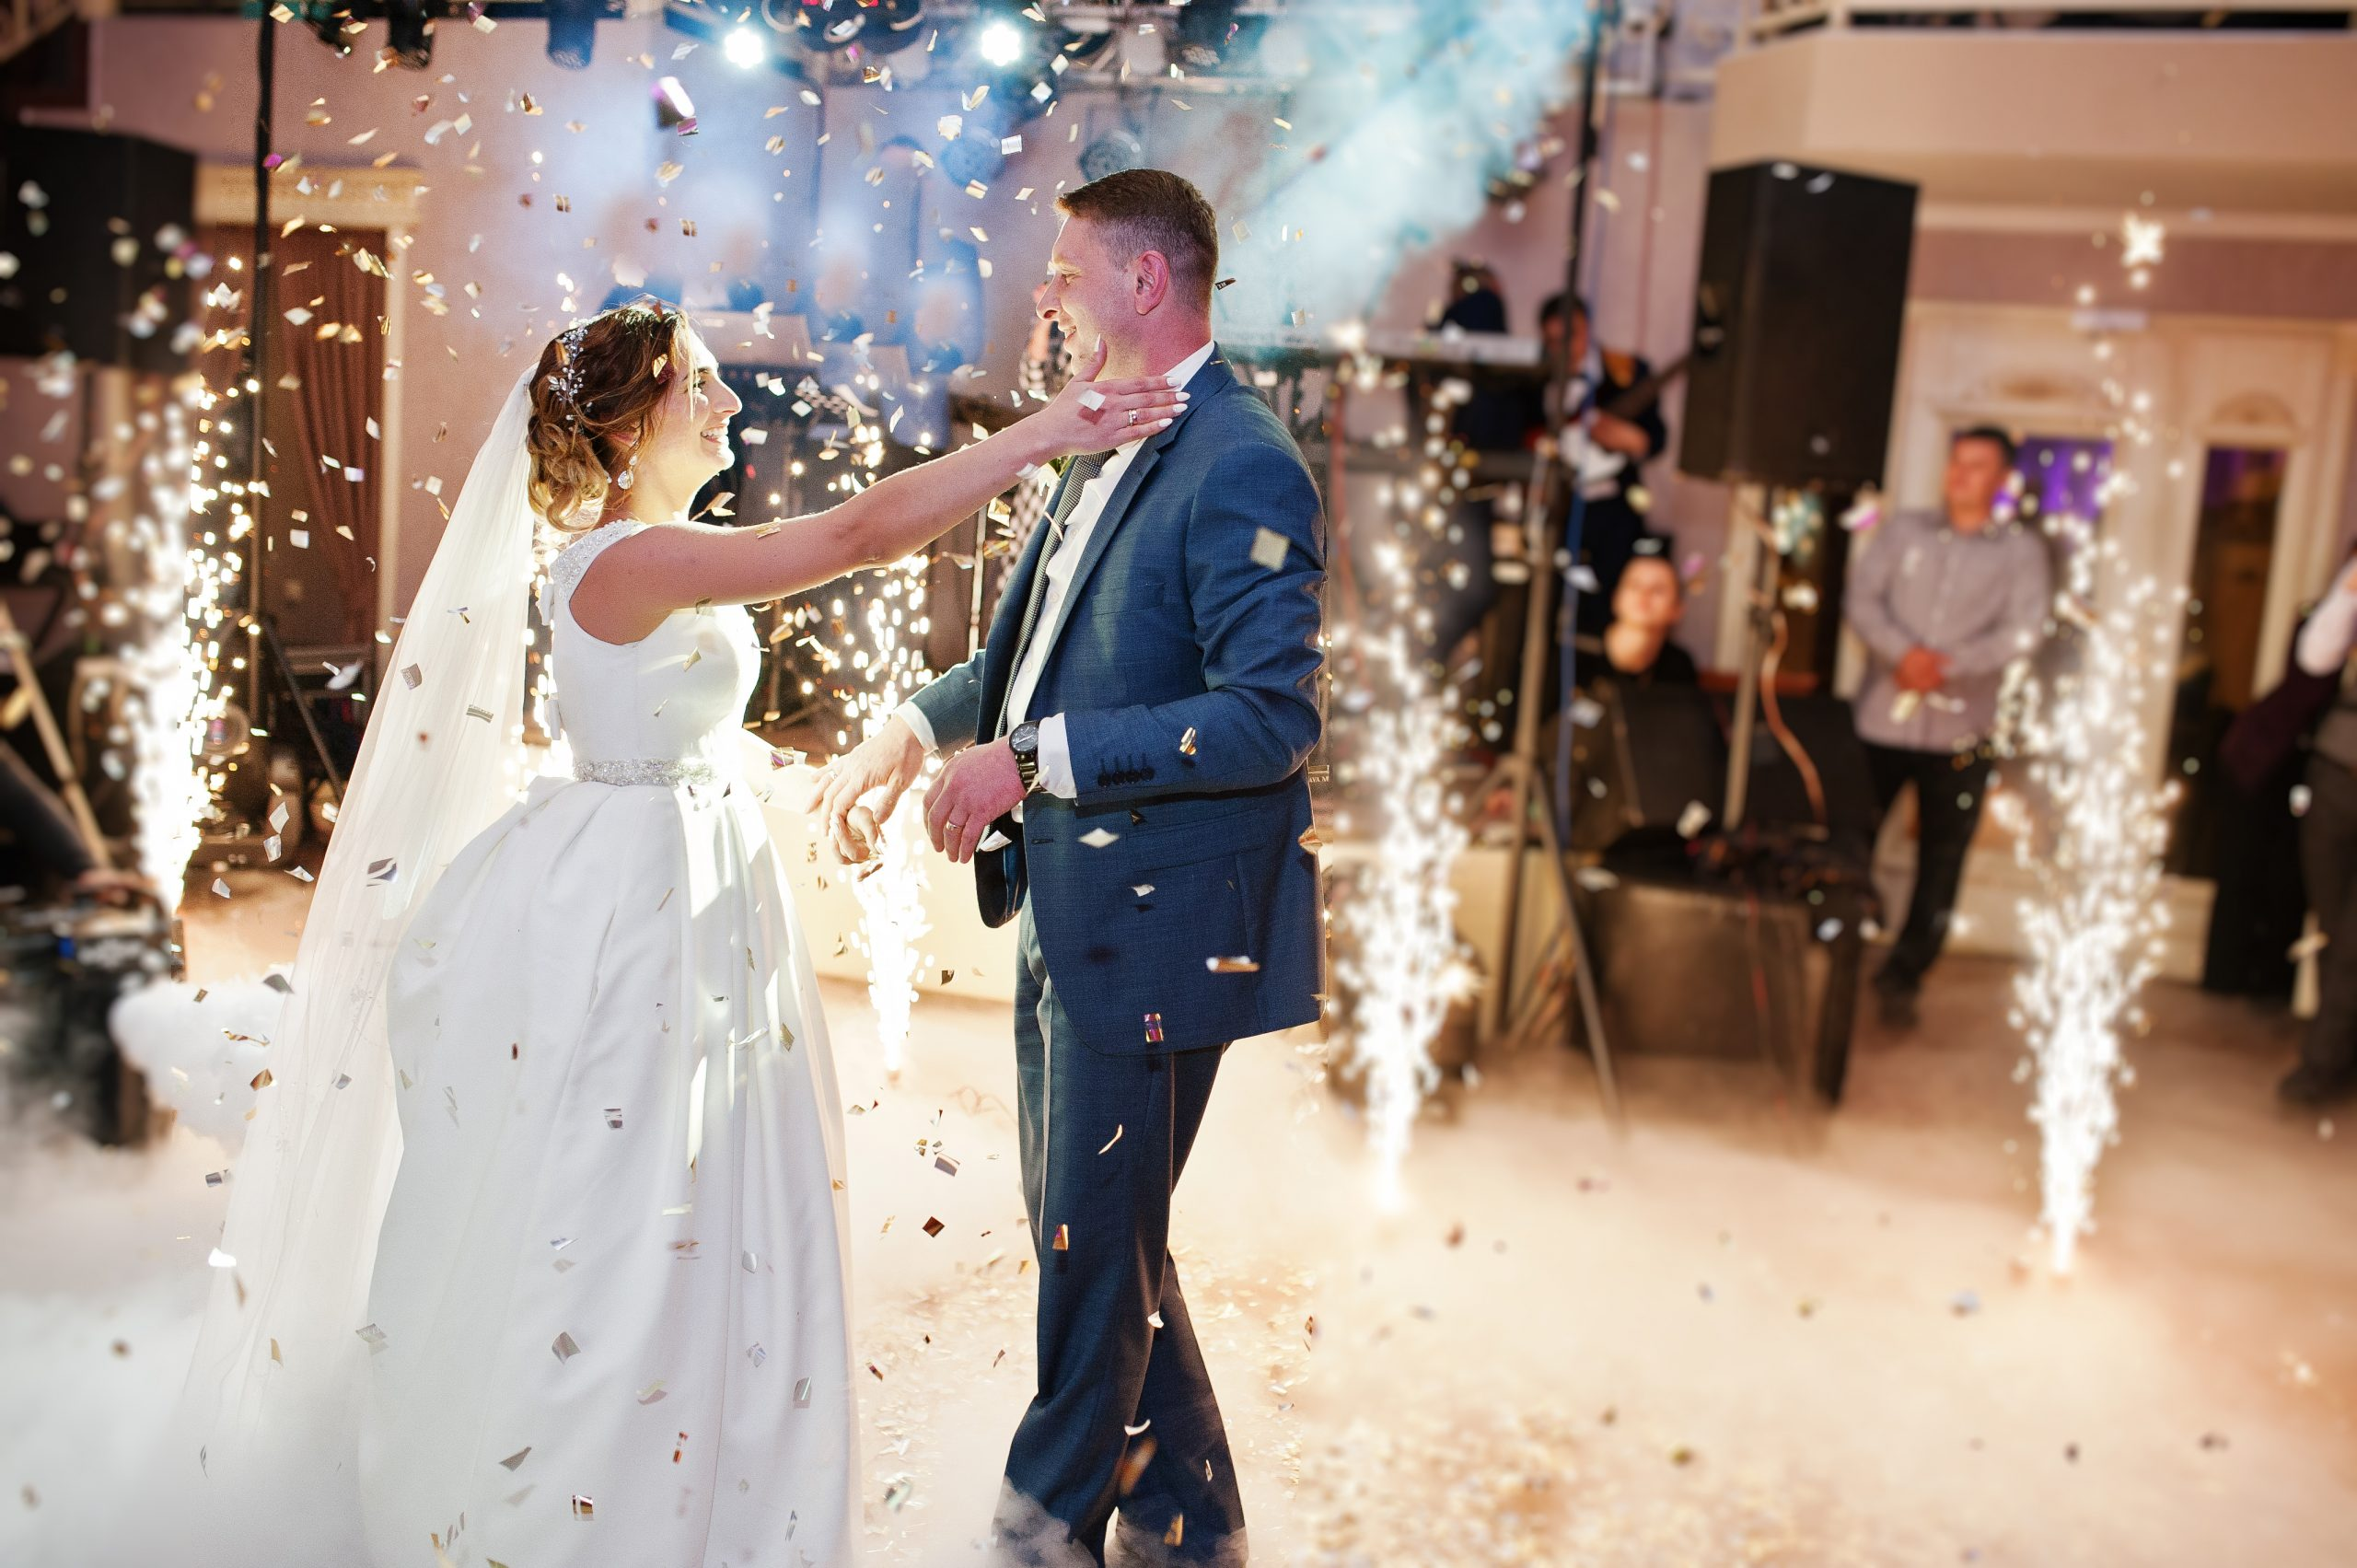 Newly married couple dancing on their wedding party with heavy smoke, multicolored lights and fireworks on the background.